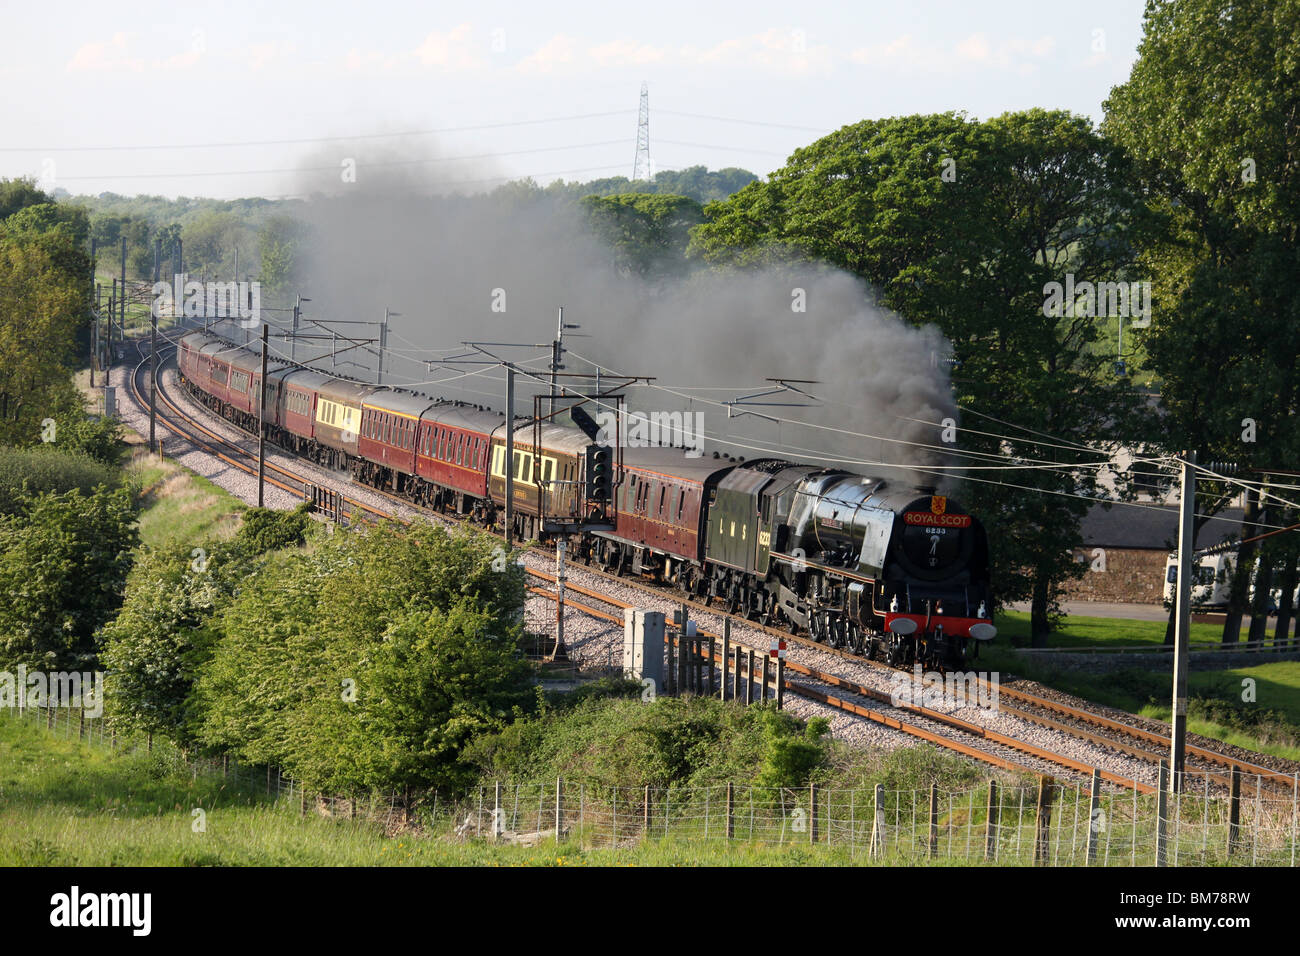 Steam train Duchess of Sutherland on the West Coast Main Line south of Lancaster - Stock Image